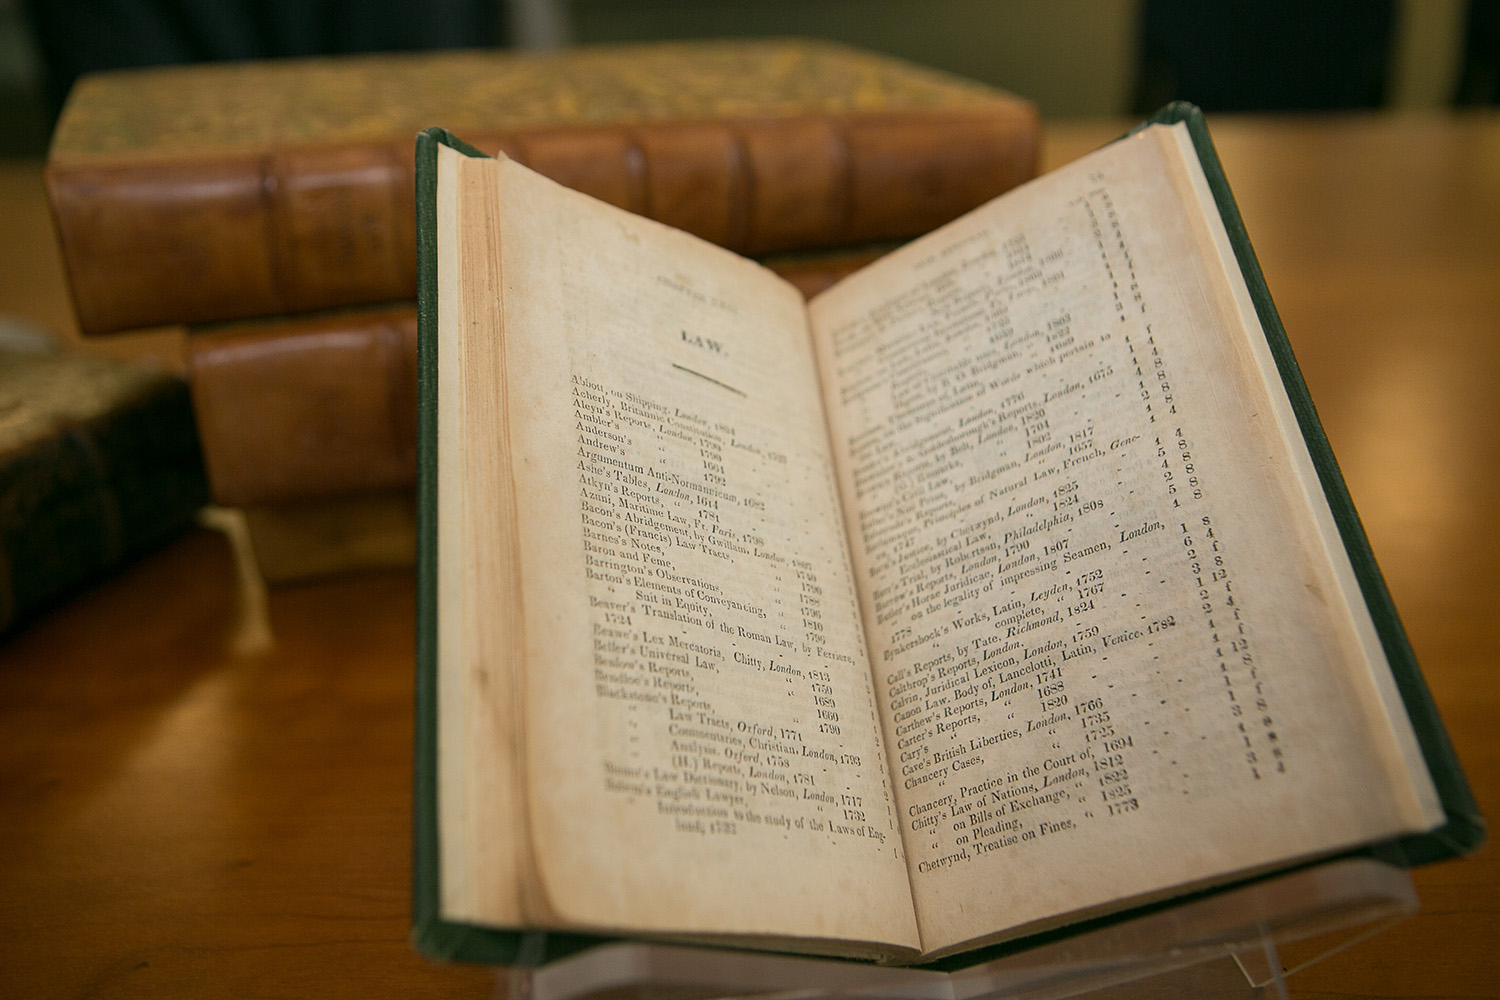 Books from Thomas Jefferson's 1828 Catalogue, shown here, will now be digitized and made available online.